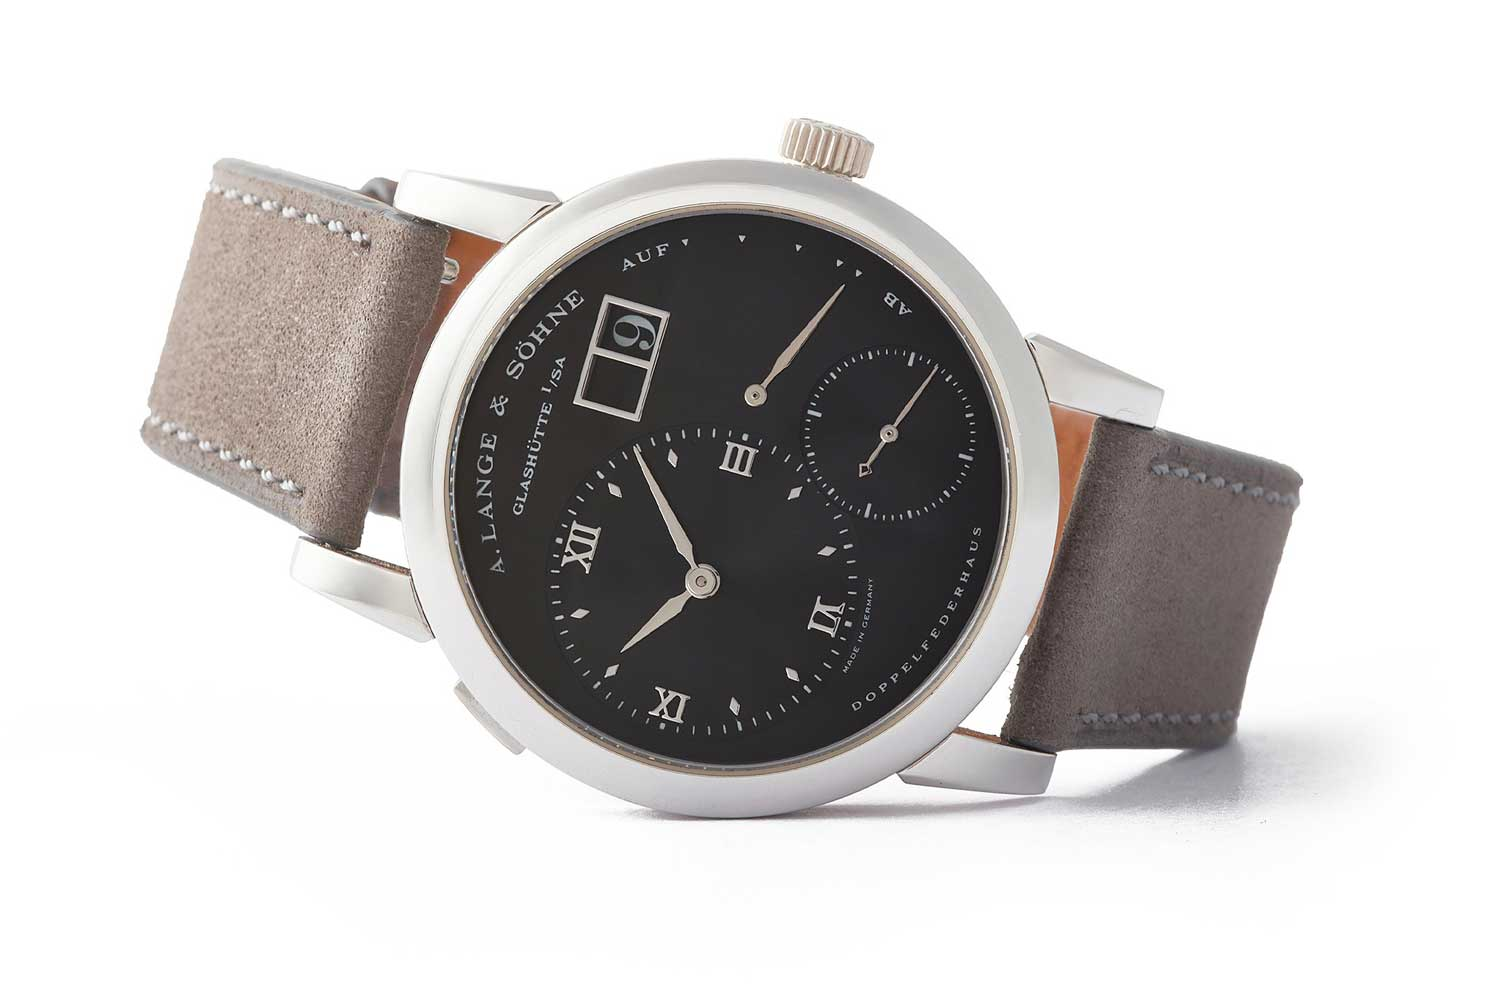 """The Lange 1 reference no. 101.035, also referred to as the """"Darth"""" (Image: acollectedman.com)"""